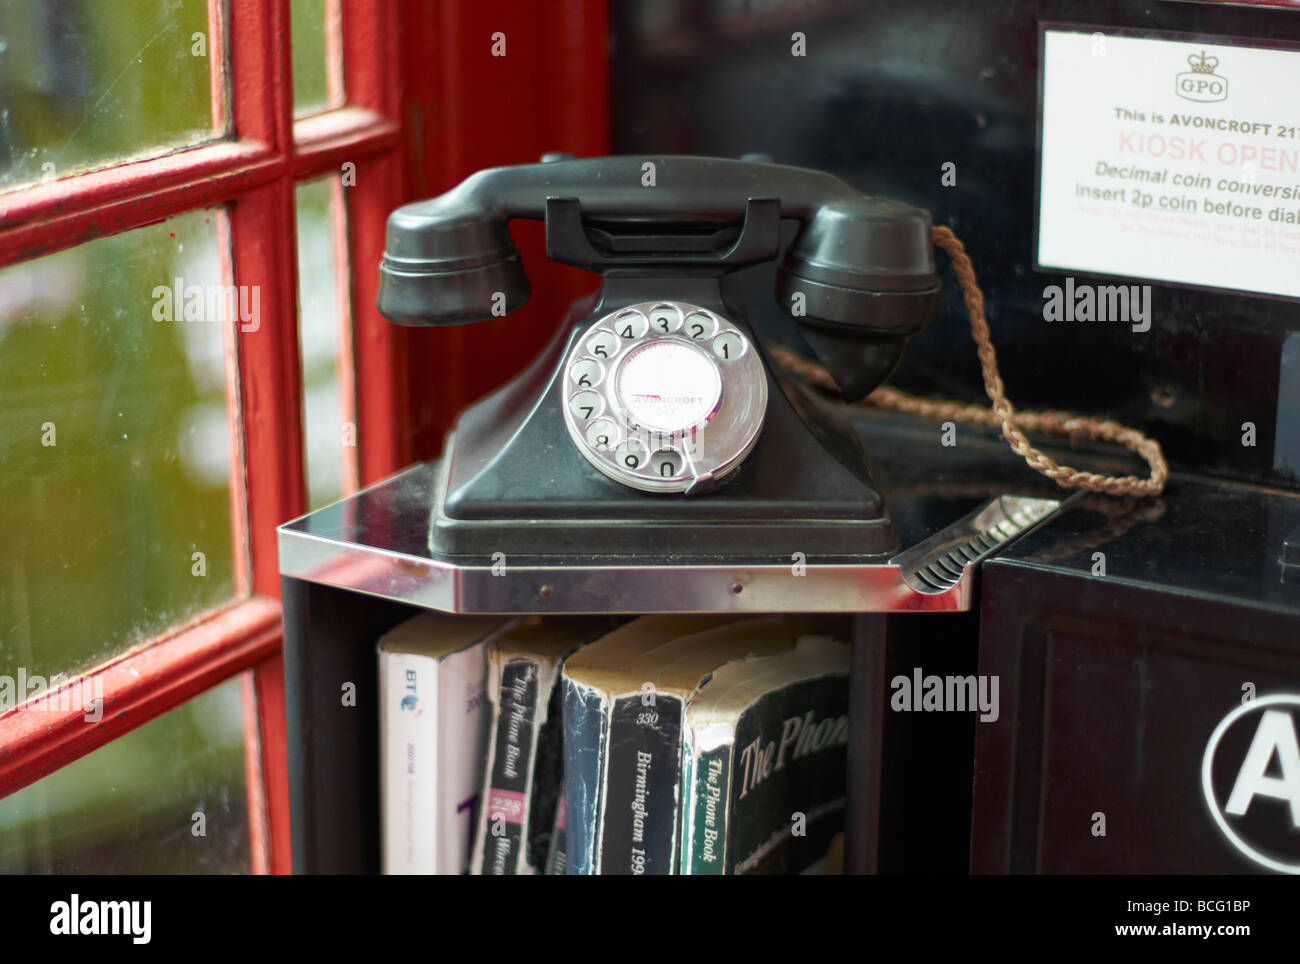 Avoncroft buildings museum bromsgrove worcestershire collection of vinatge telephone boxes - Stock Image